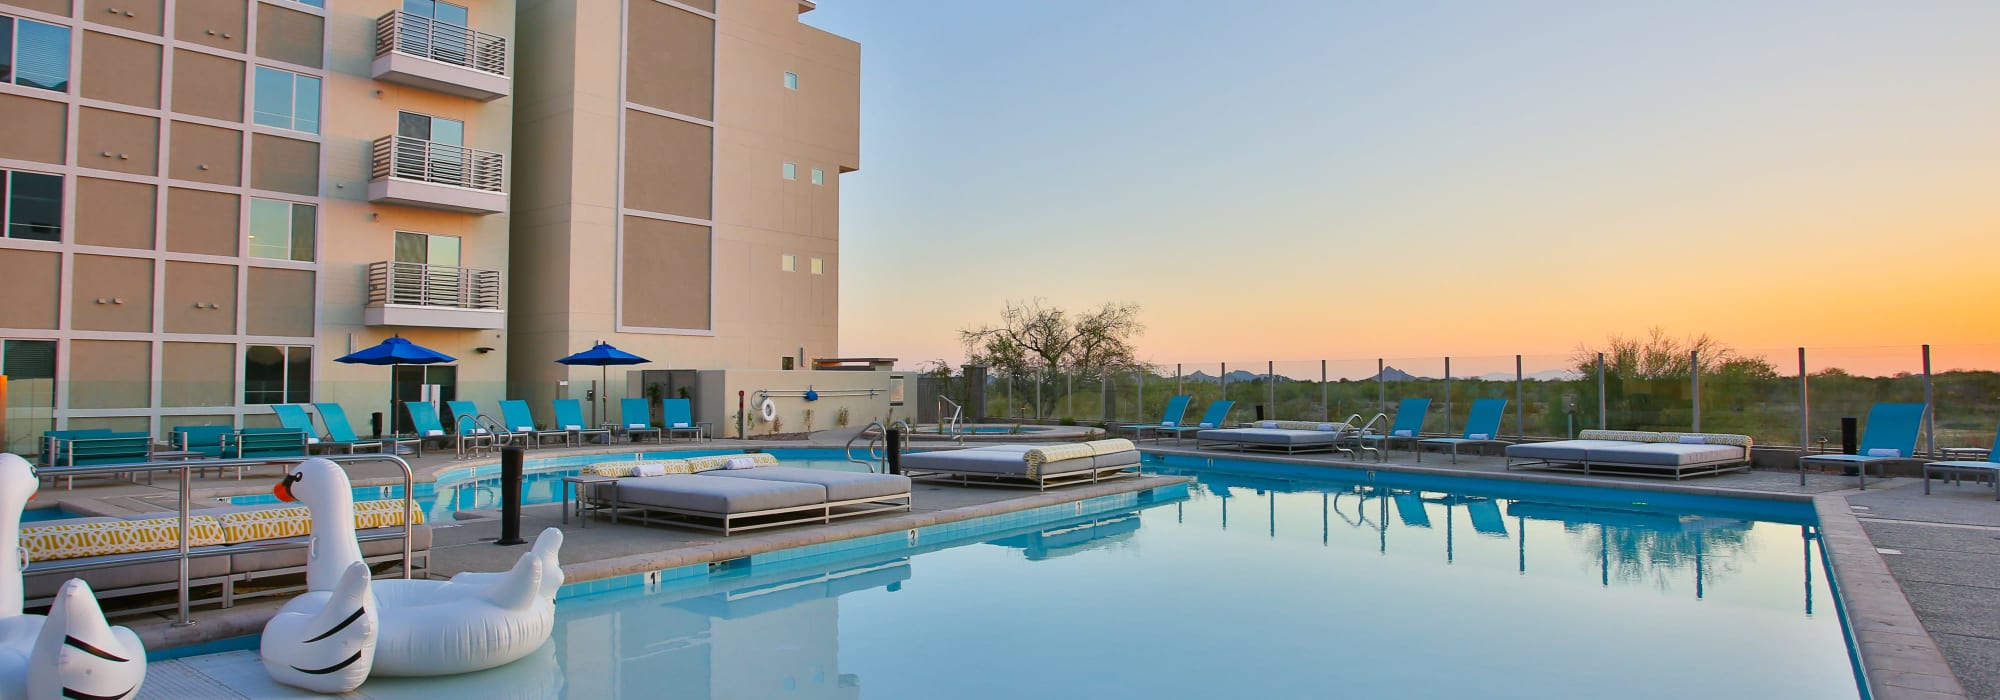 Swimming pool area at dawn at Slate Scottsdale in Phoenix, Arizona